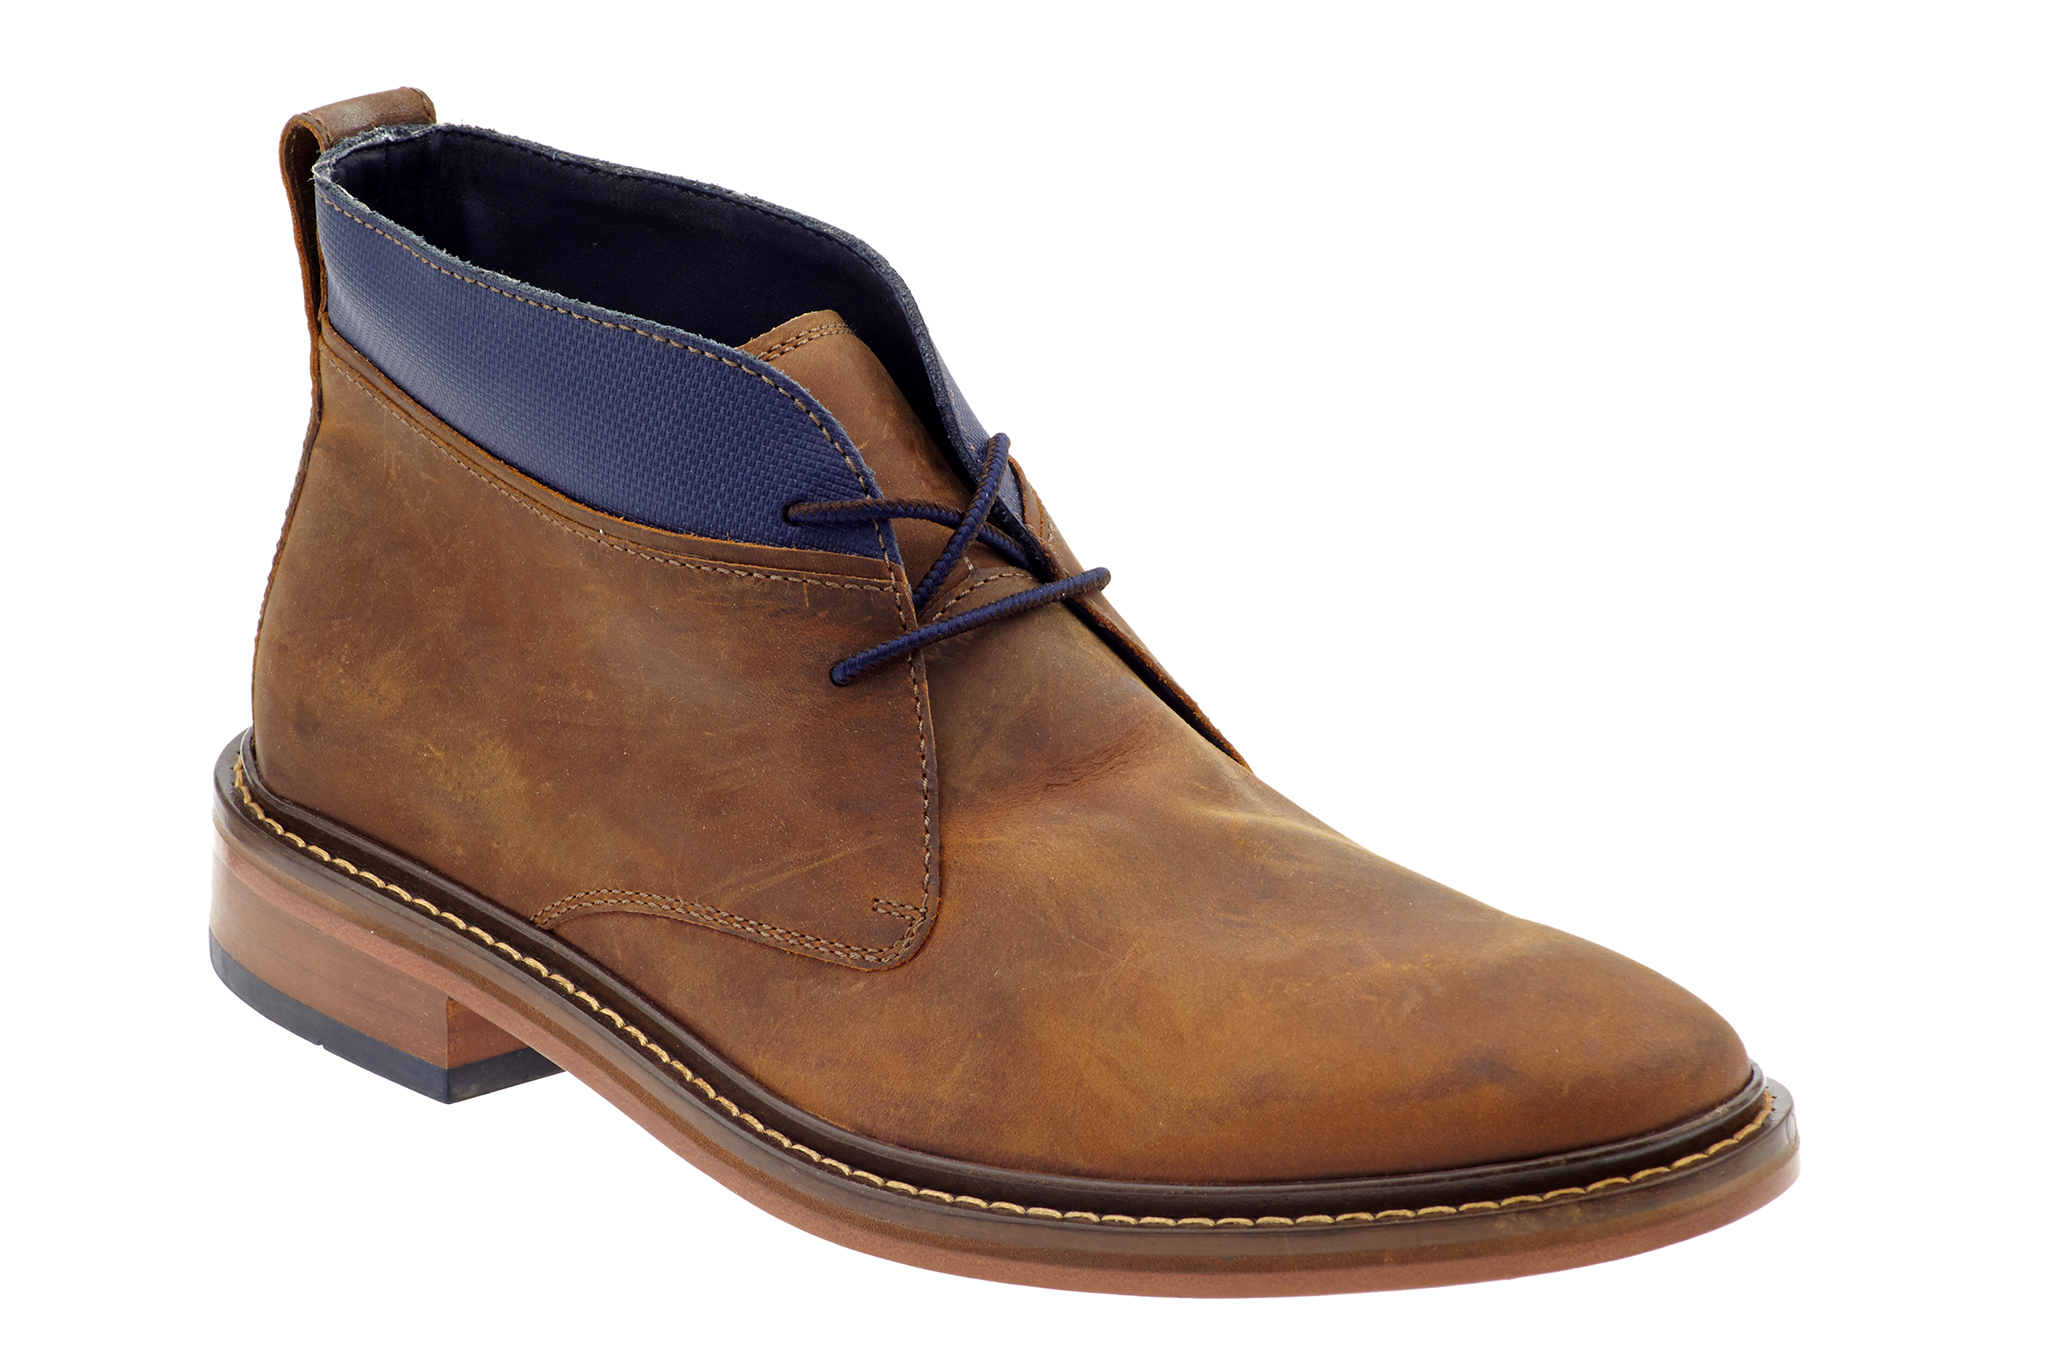 Best Boots For Men Fall 2013 Chukka Lace Up Chelsea And Hiking Boots